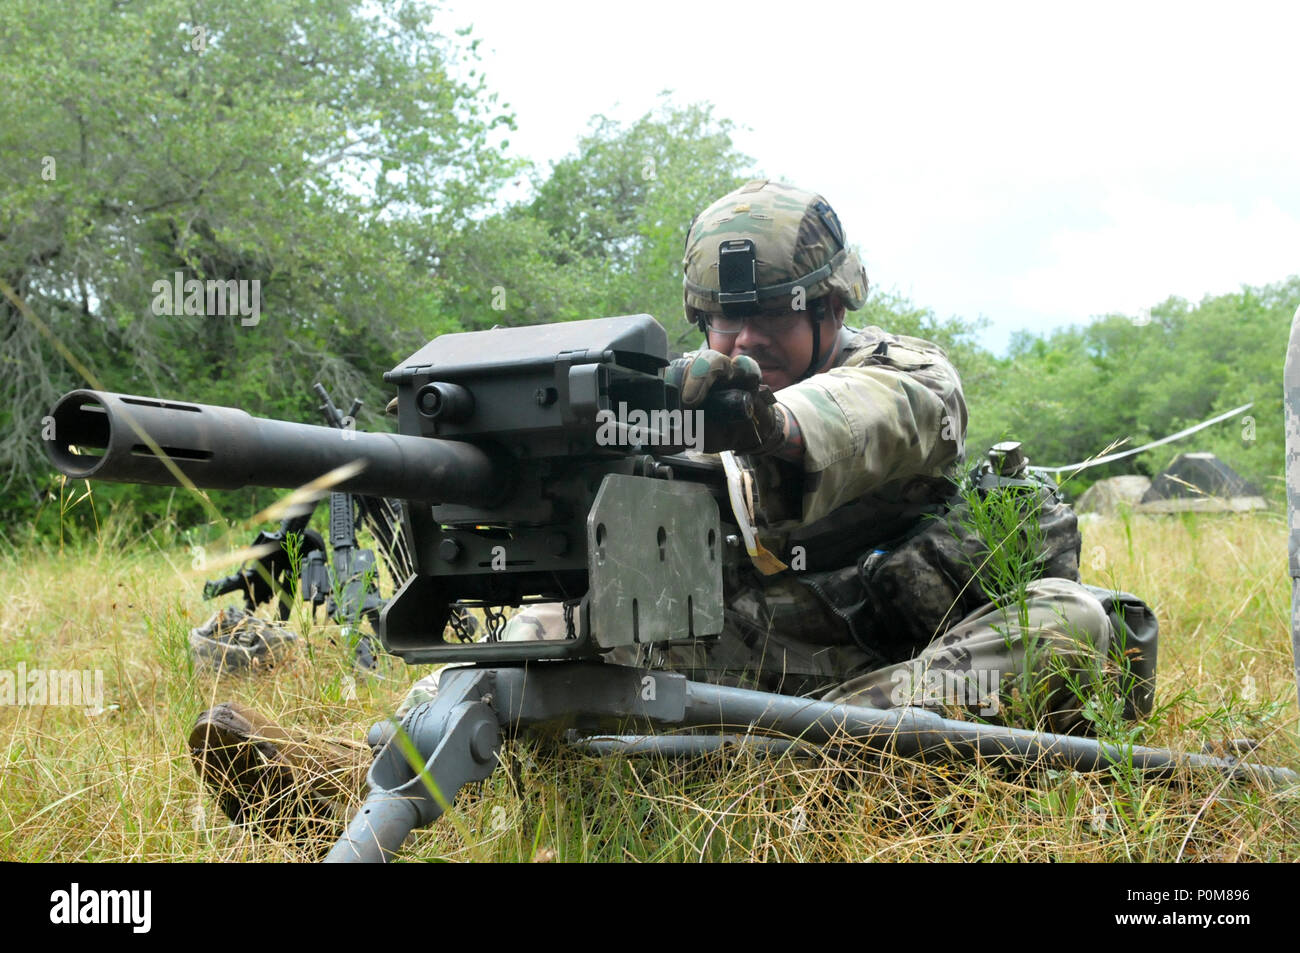 Soldiers From The 36th Infantry Division Headquarters Took Automatic Range Hood First Steps Toward Crew Serve Weapons Qualification During Annual Training June 4 2018 At Fort Texas Is Part